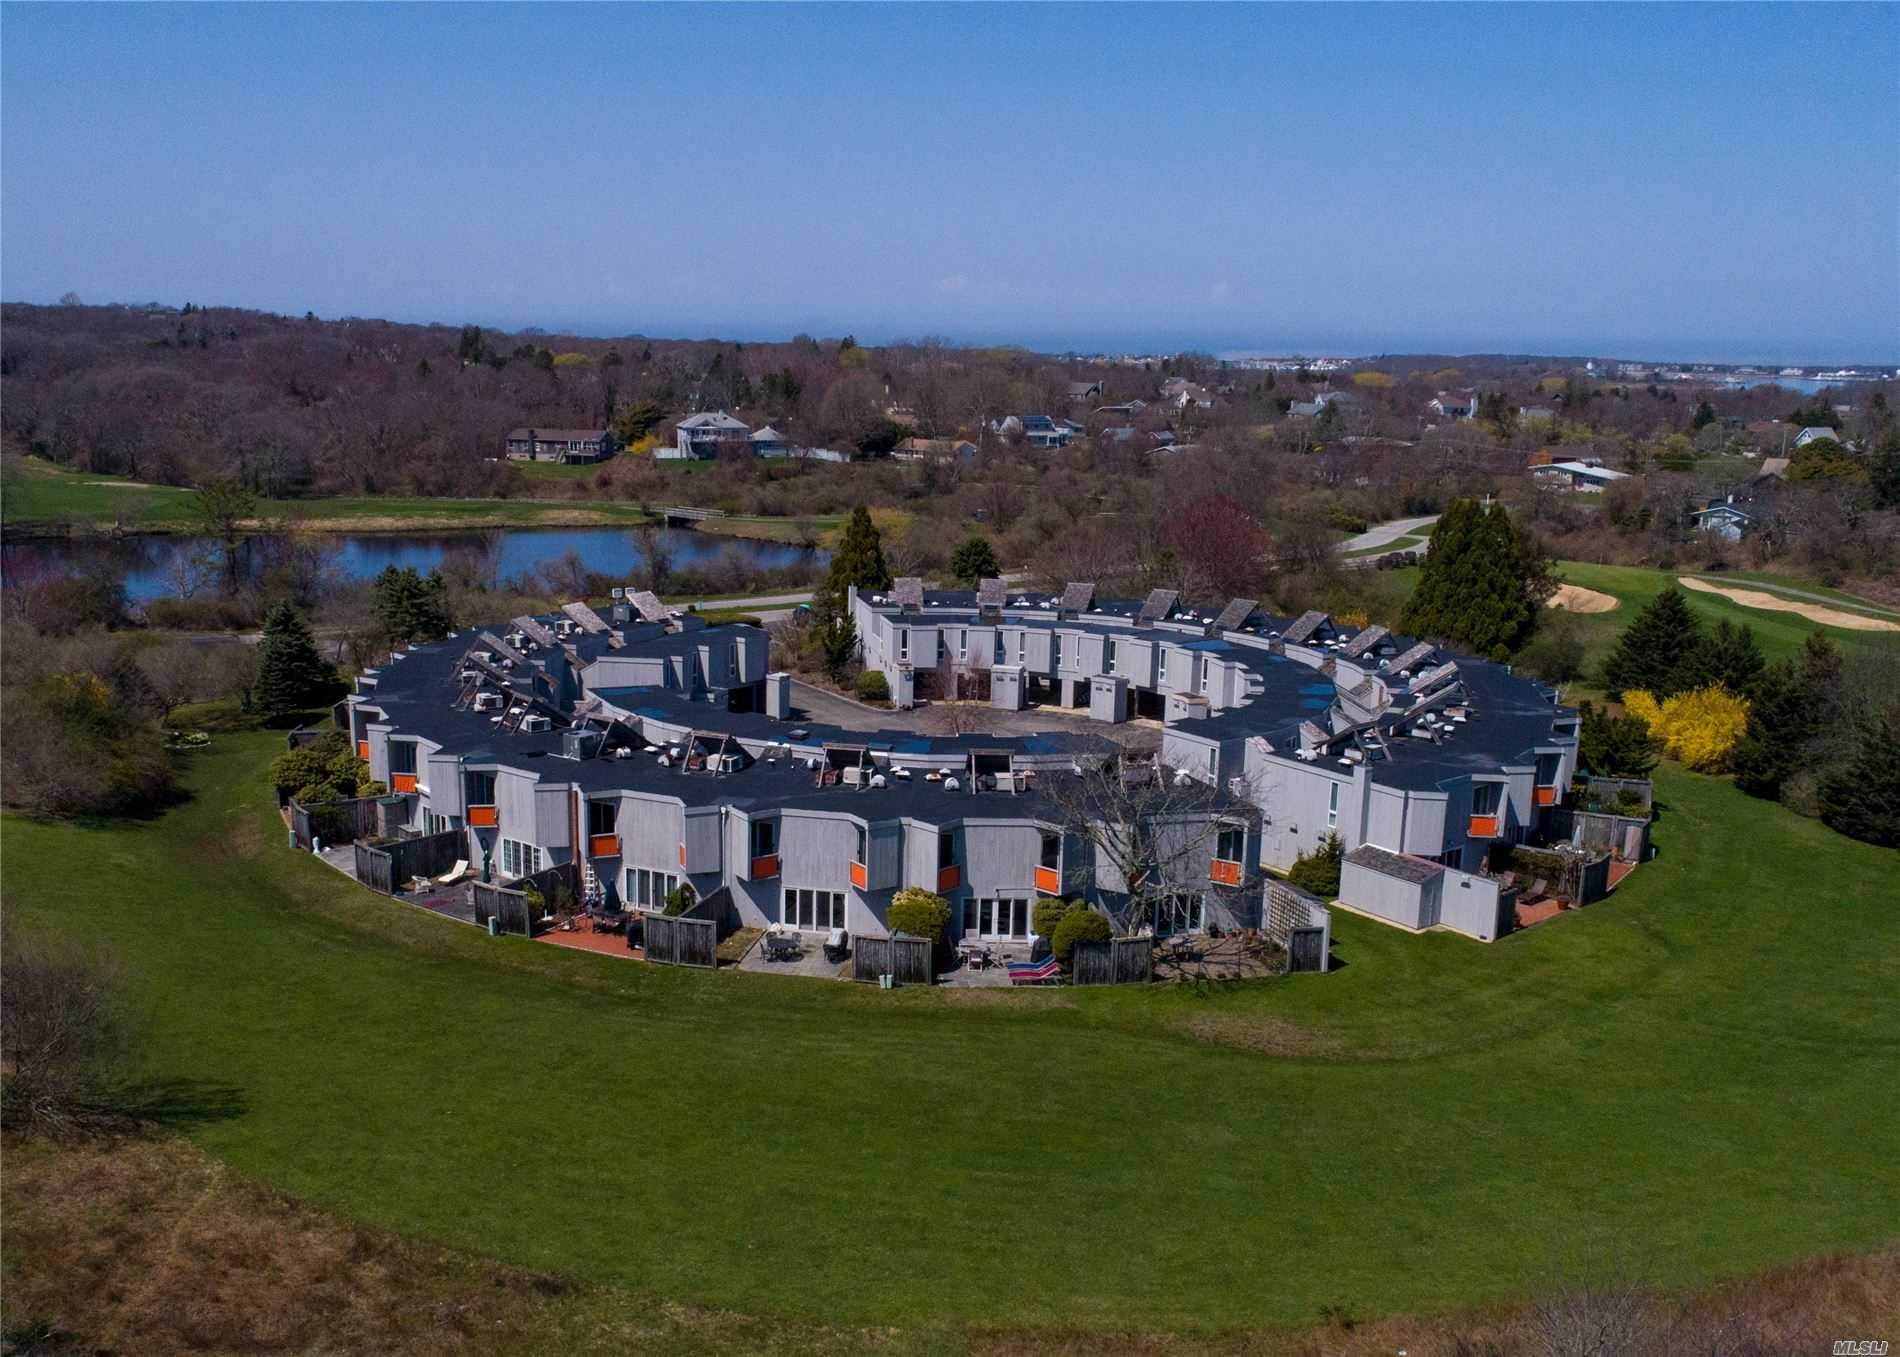 Property for sale at 29 Fairway Place # 11, Montauk NY 11954, Montauk,  New York 11954